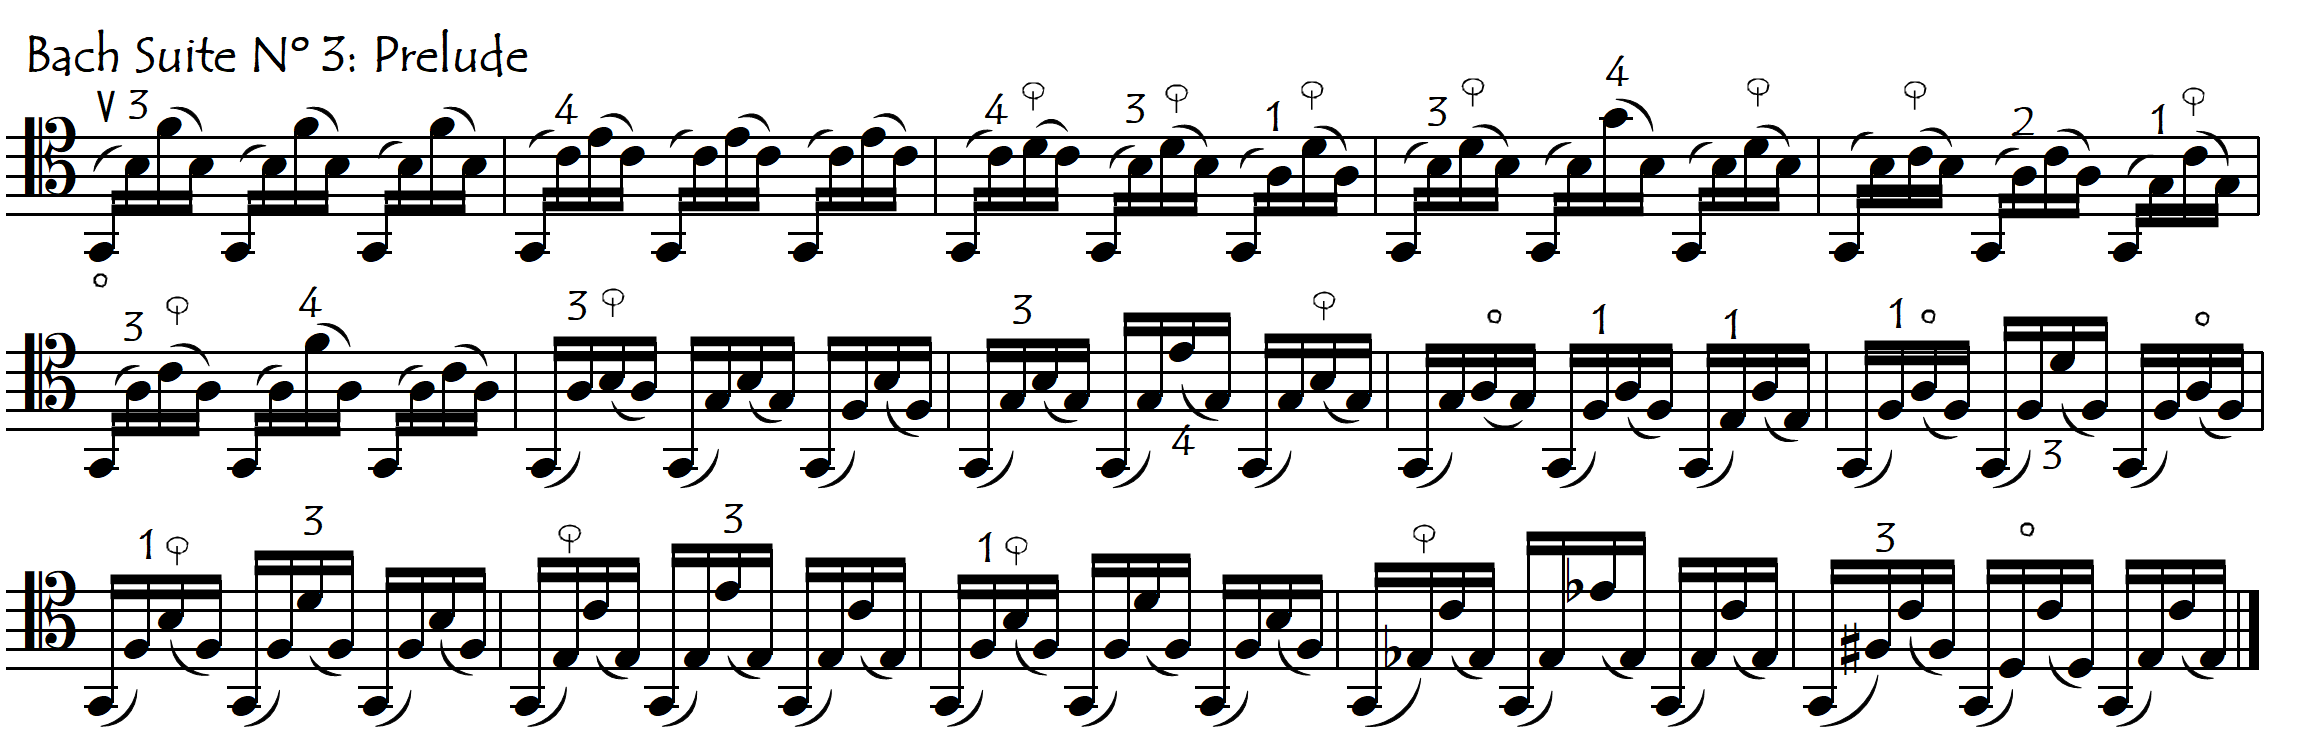 bach P3 thumb pos in neck